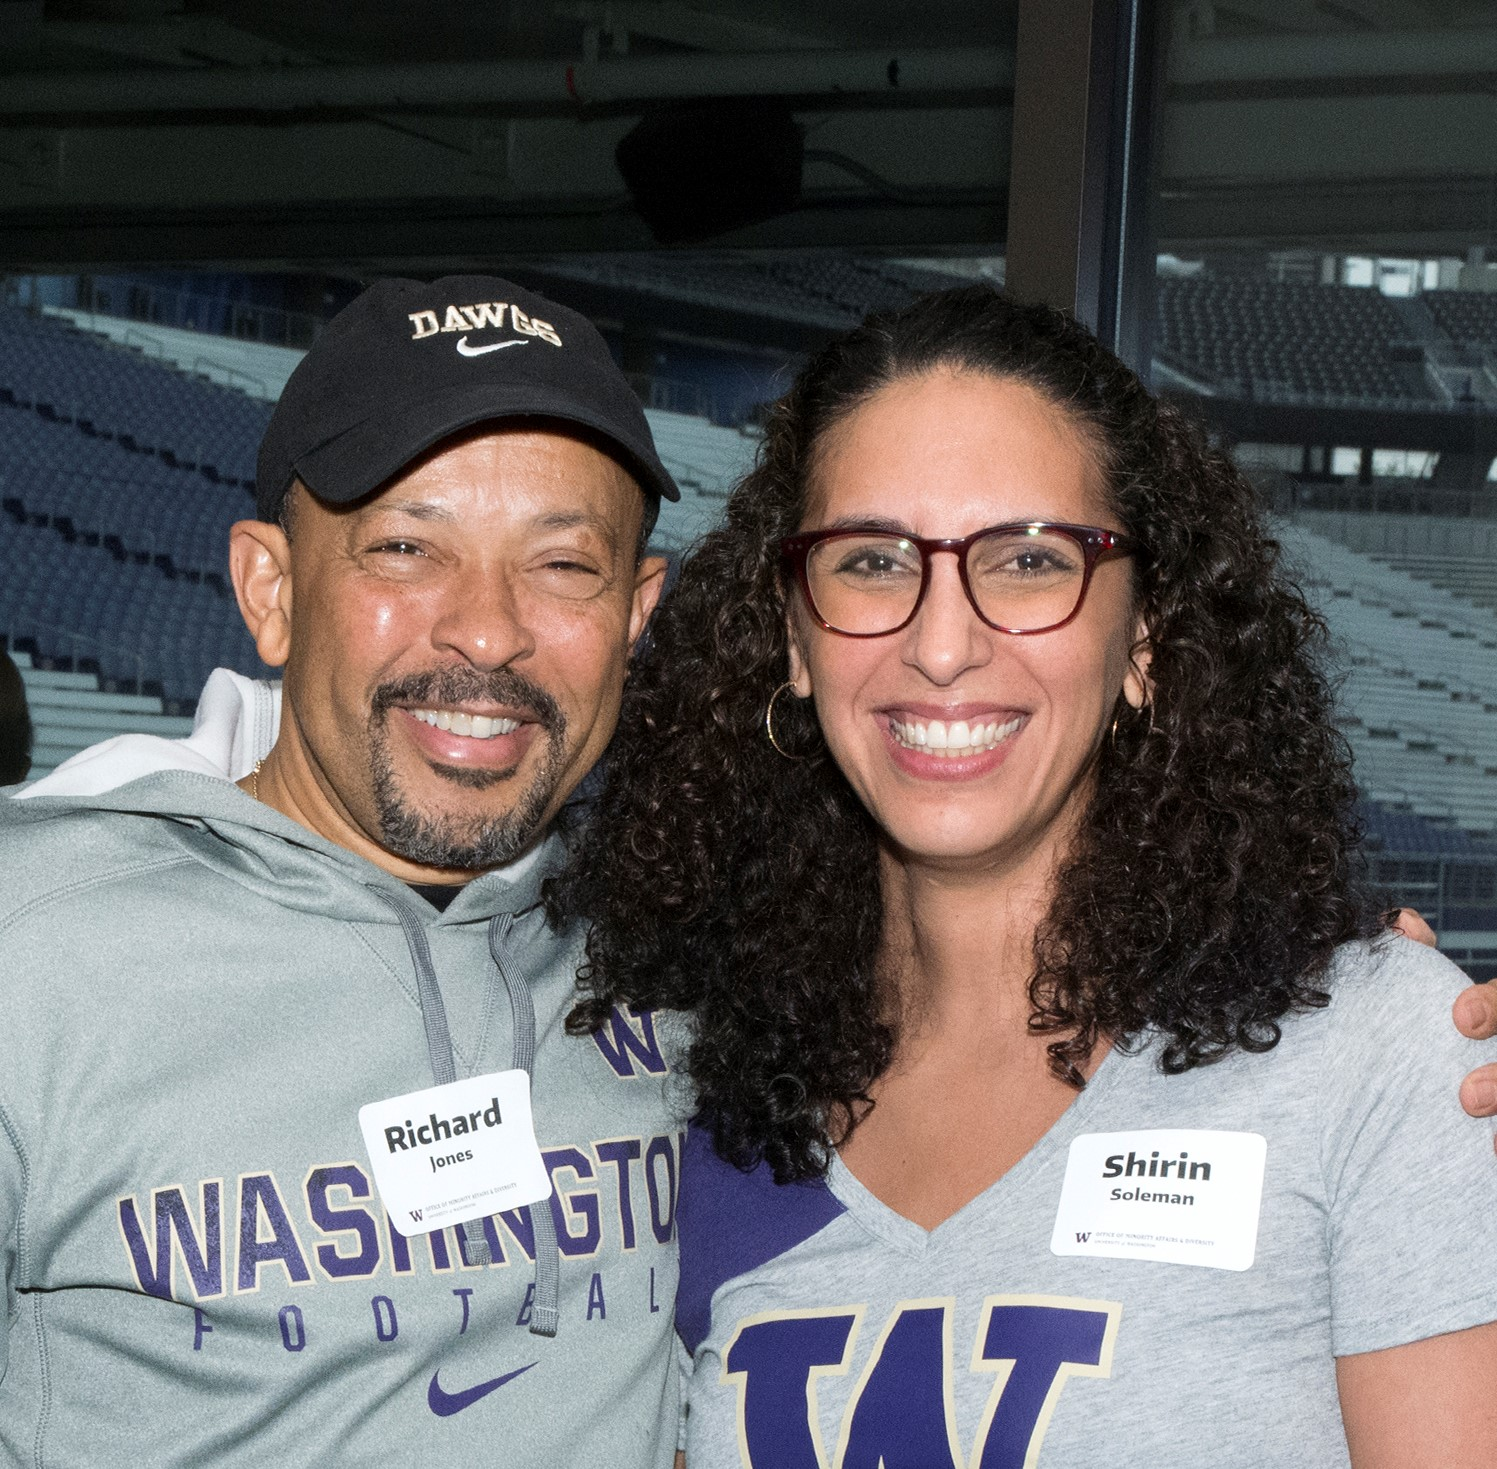 Link to article: Alumni & Friends Gather for Annual Husky Football Viewing Party